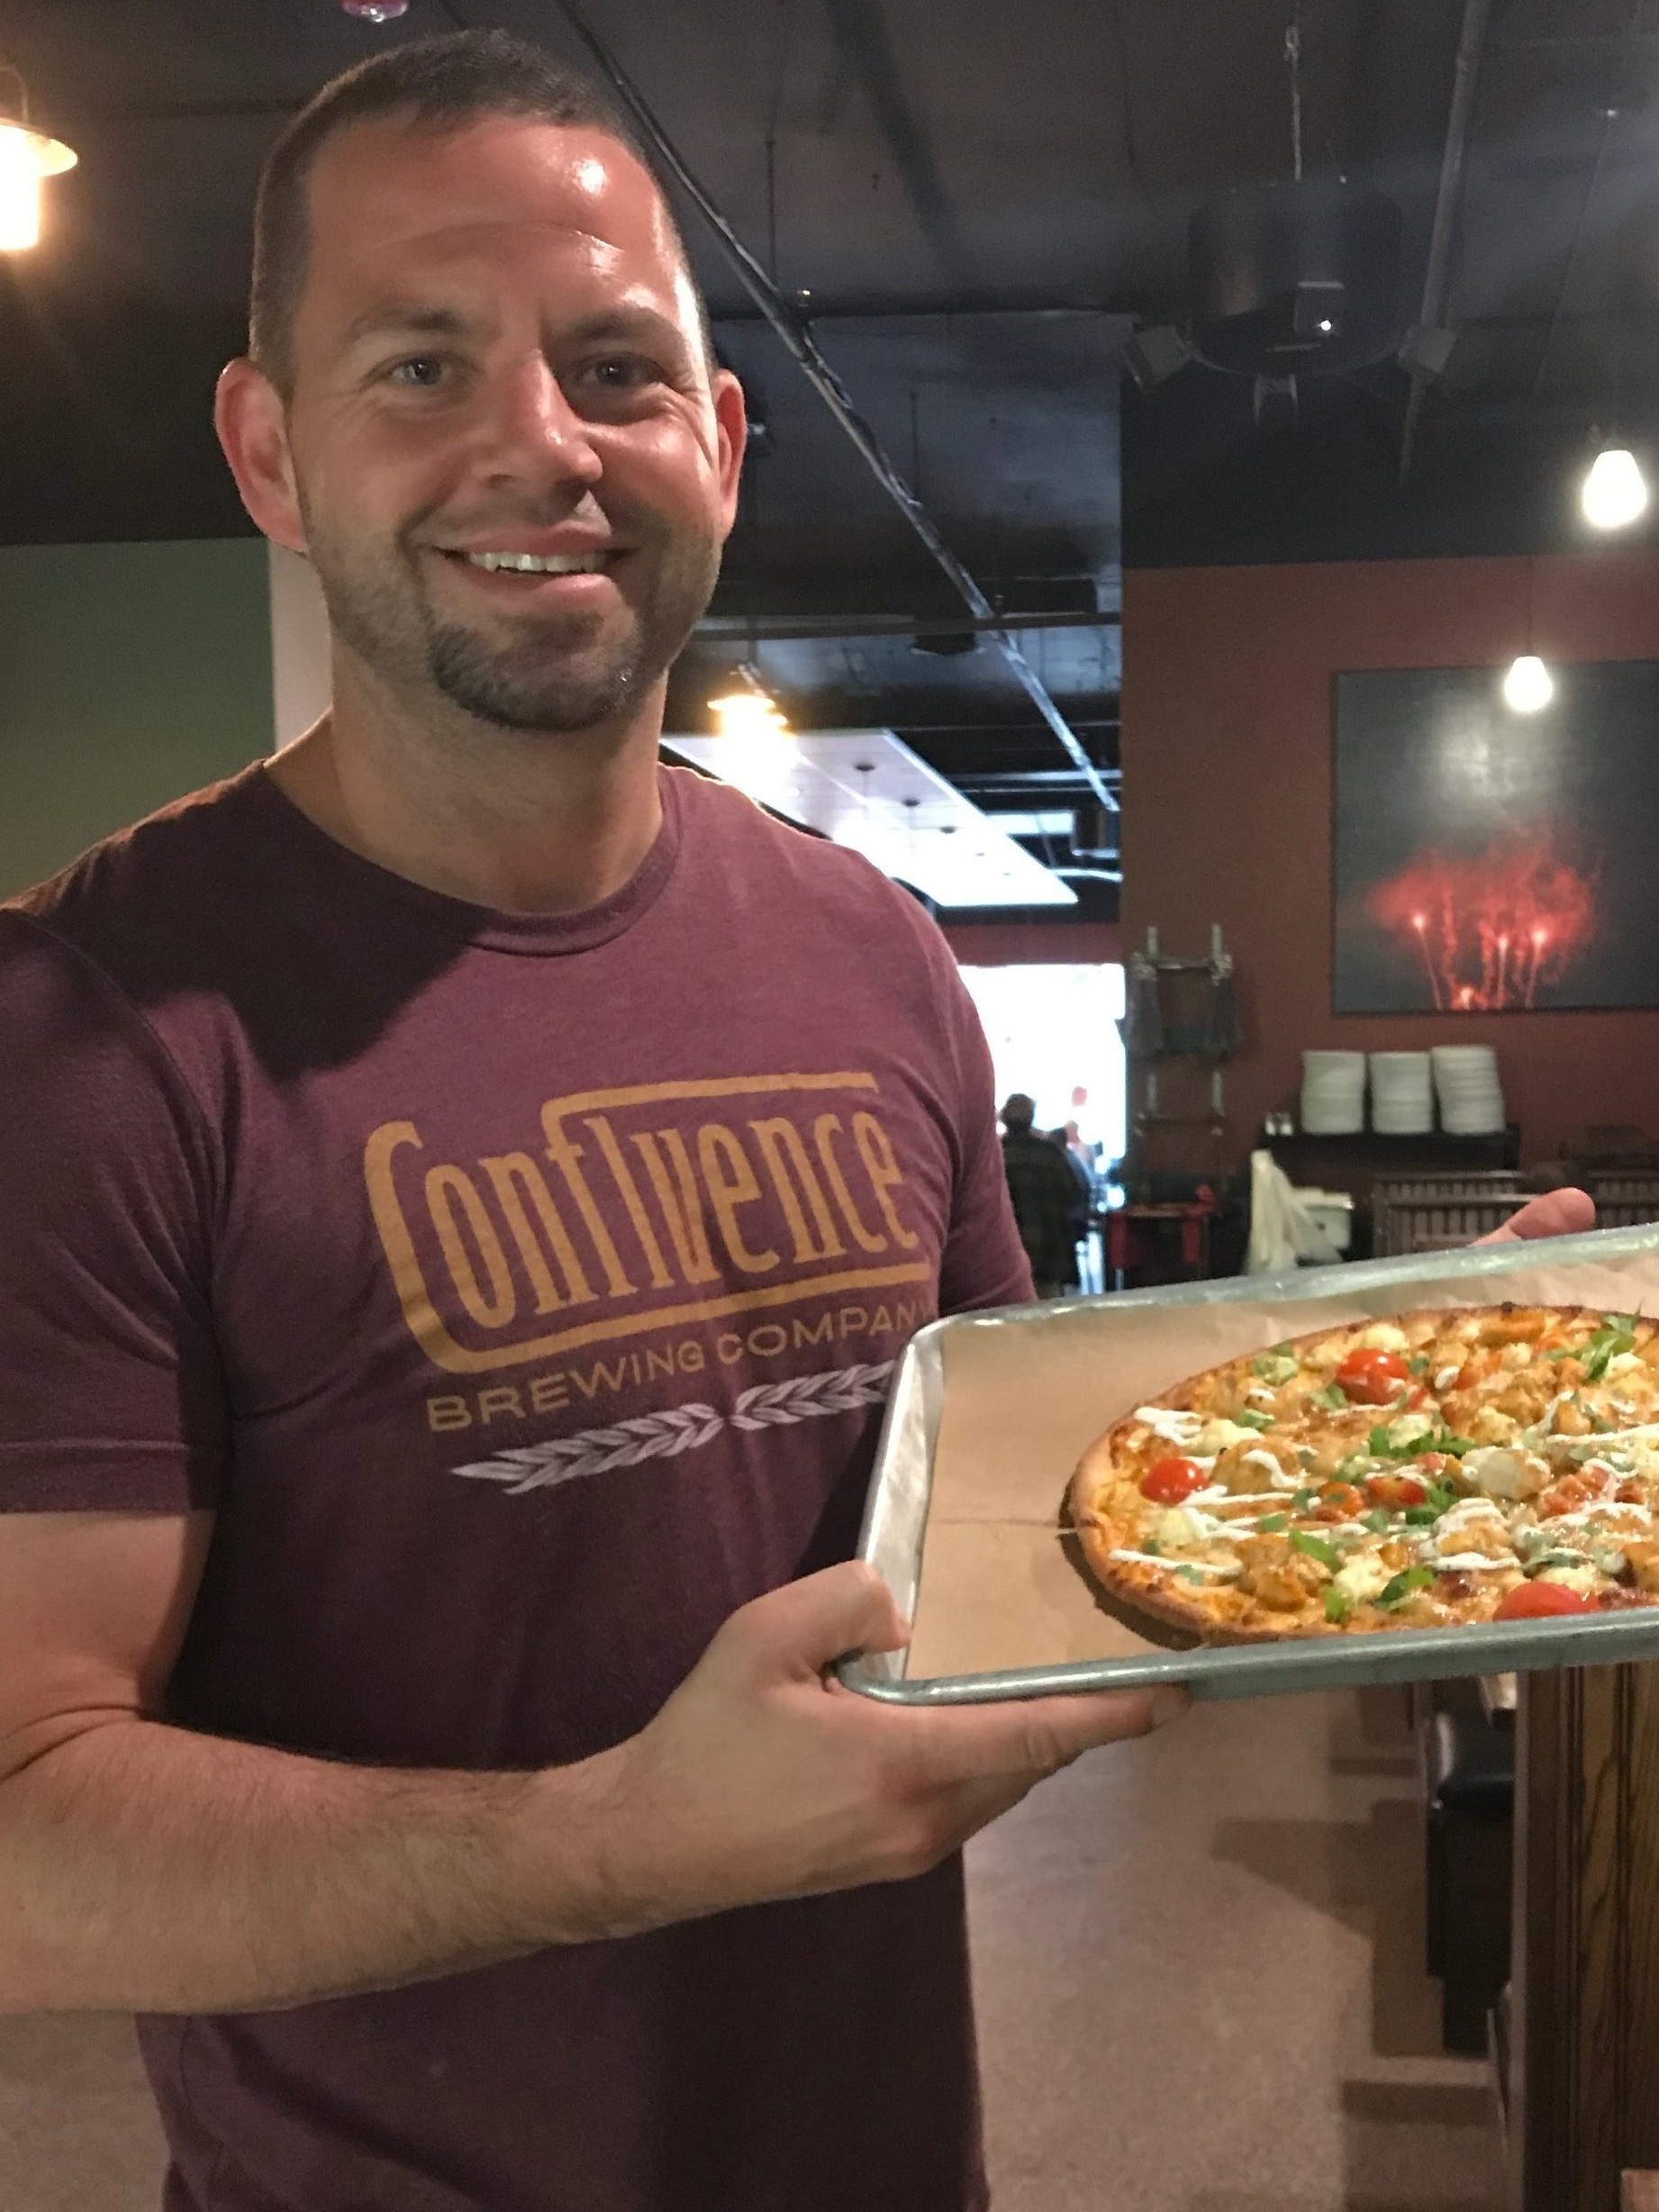 Thank you to Board Member and Need Pizza owner Bob Wagner for raising over $1,000 for the PR Foundation with his fund raising pizza available the week of June 3rd at Need Pizza Cedar Rapids, Iowa. Butter Chicken with homemade Paneer cheese, cherry tomatoes, caramelized onions and lime yogurt sauce.